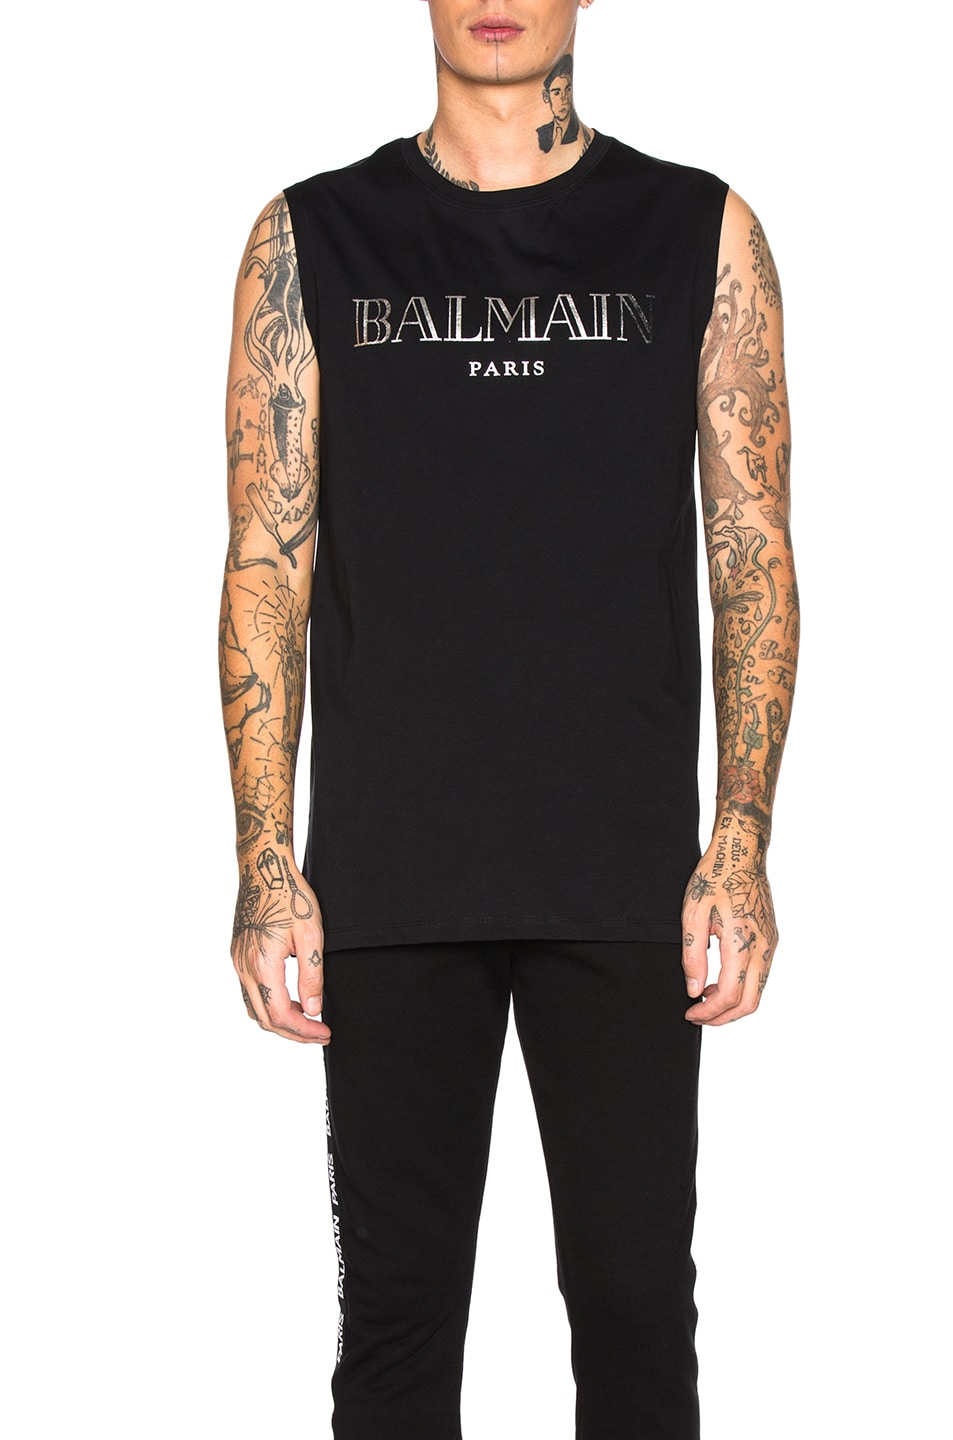 Image 1 of BALMAIN Balmain Paris Tank Top in Noir & Argent